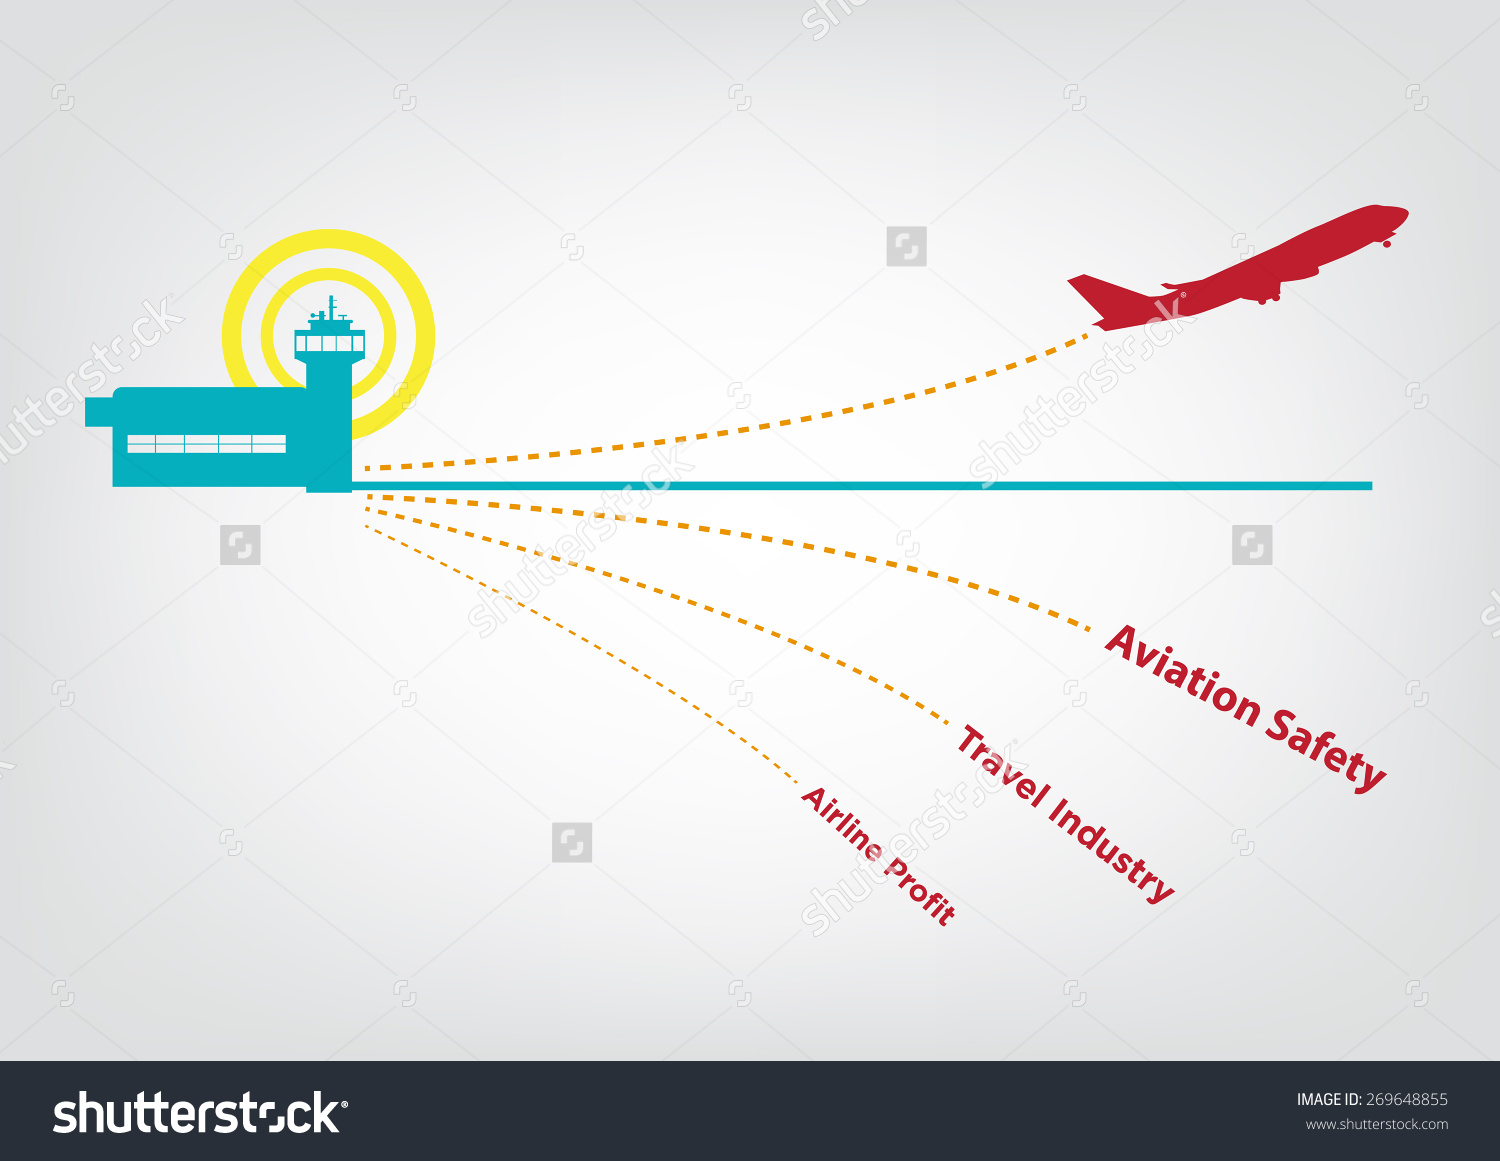 Aviation Safety Infographic Airplane Takes Off Stock Vector.